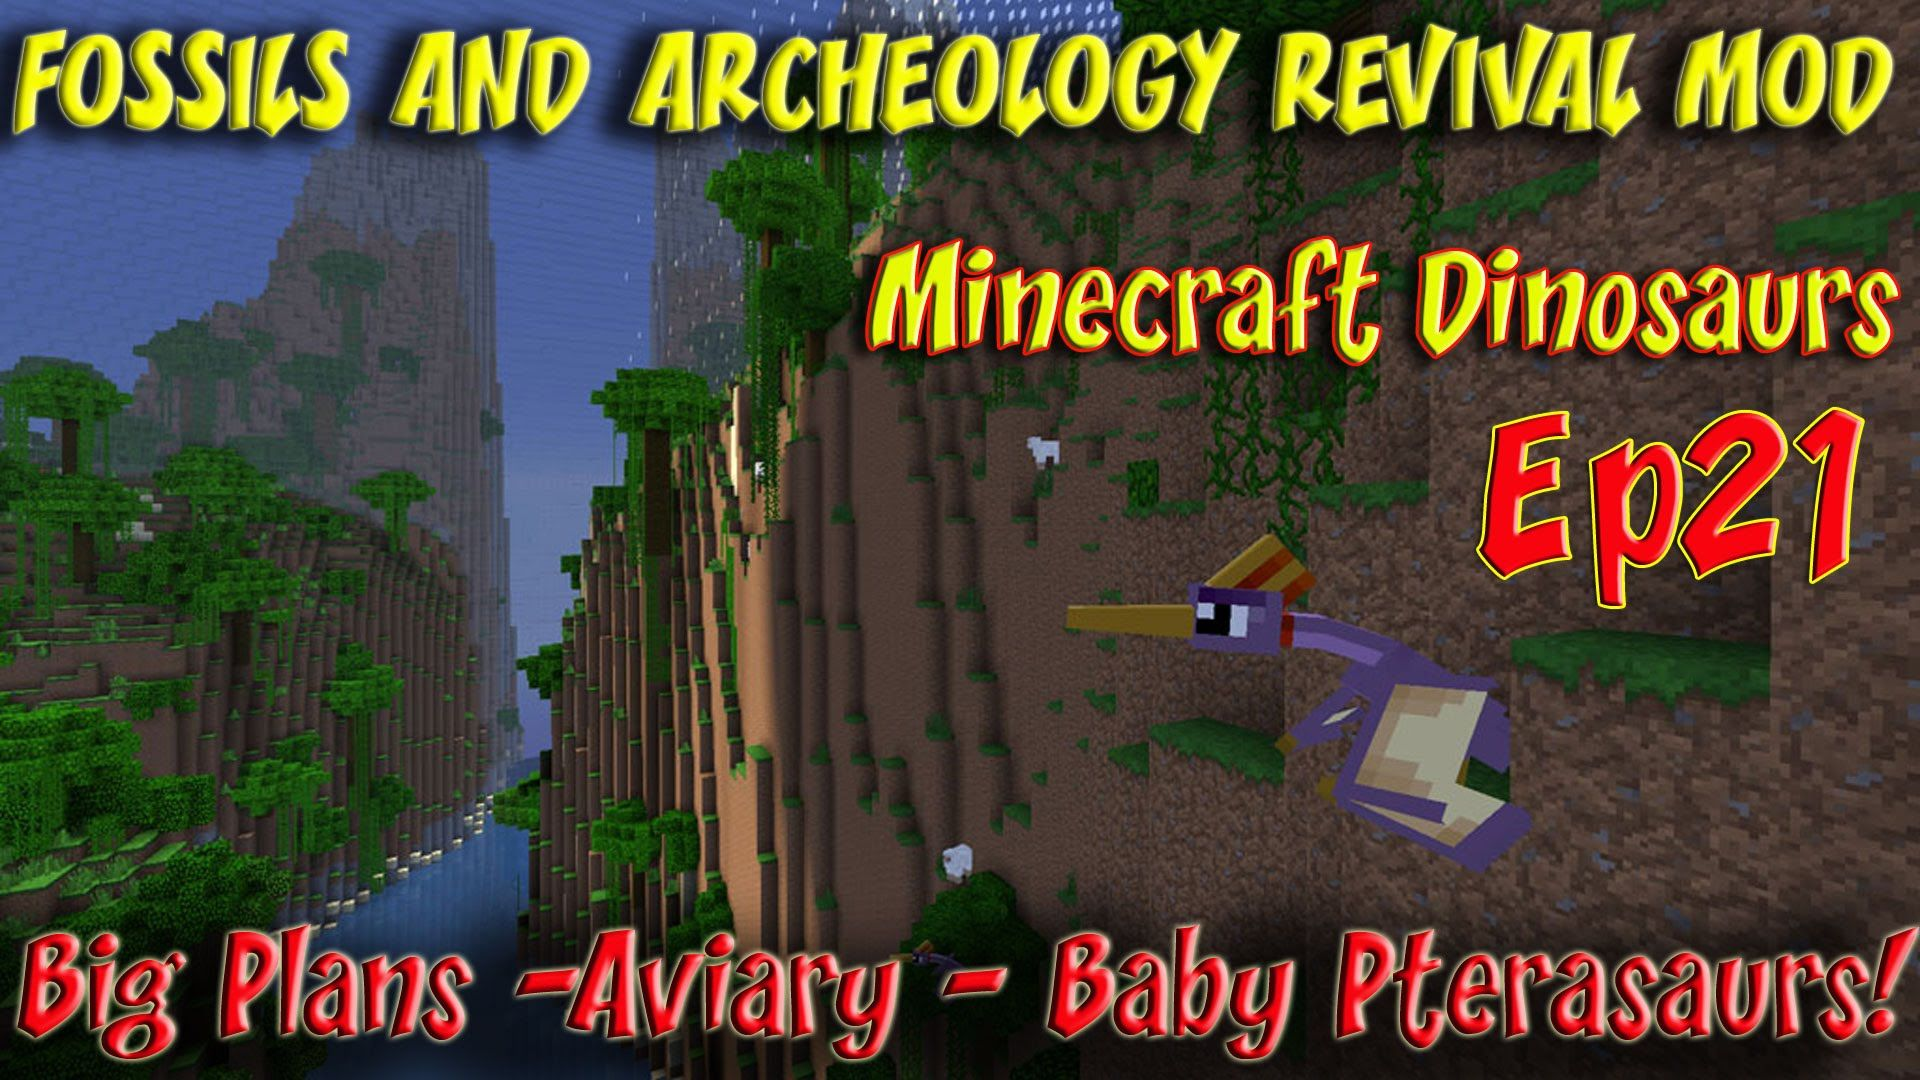 Fossils and Archeology Revival Mod Minecraft Jurassic